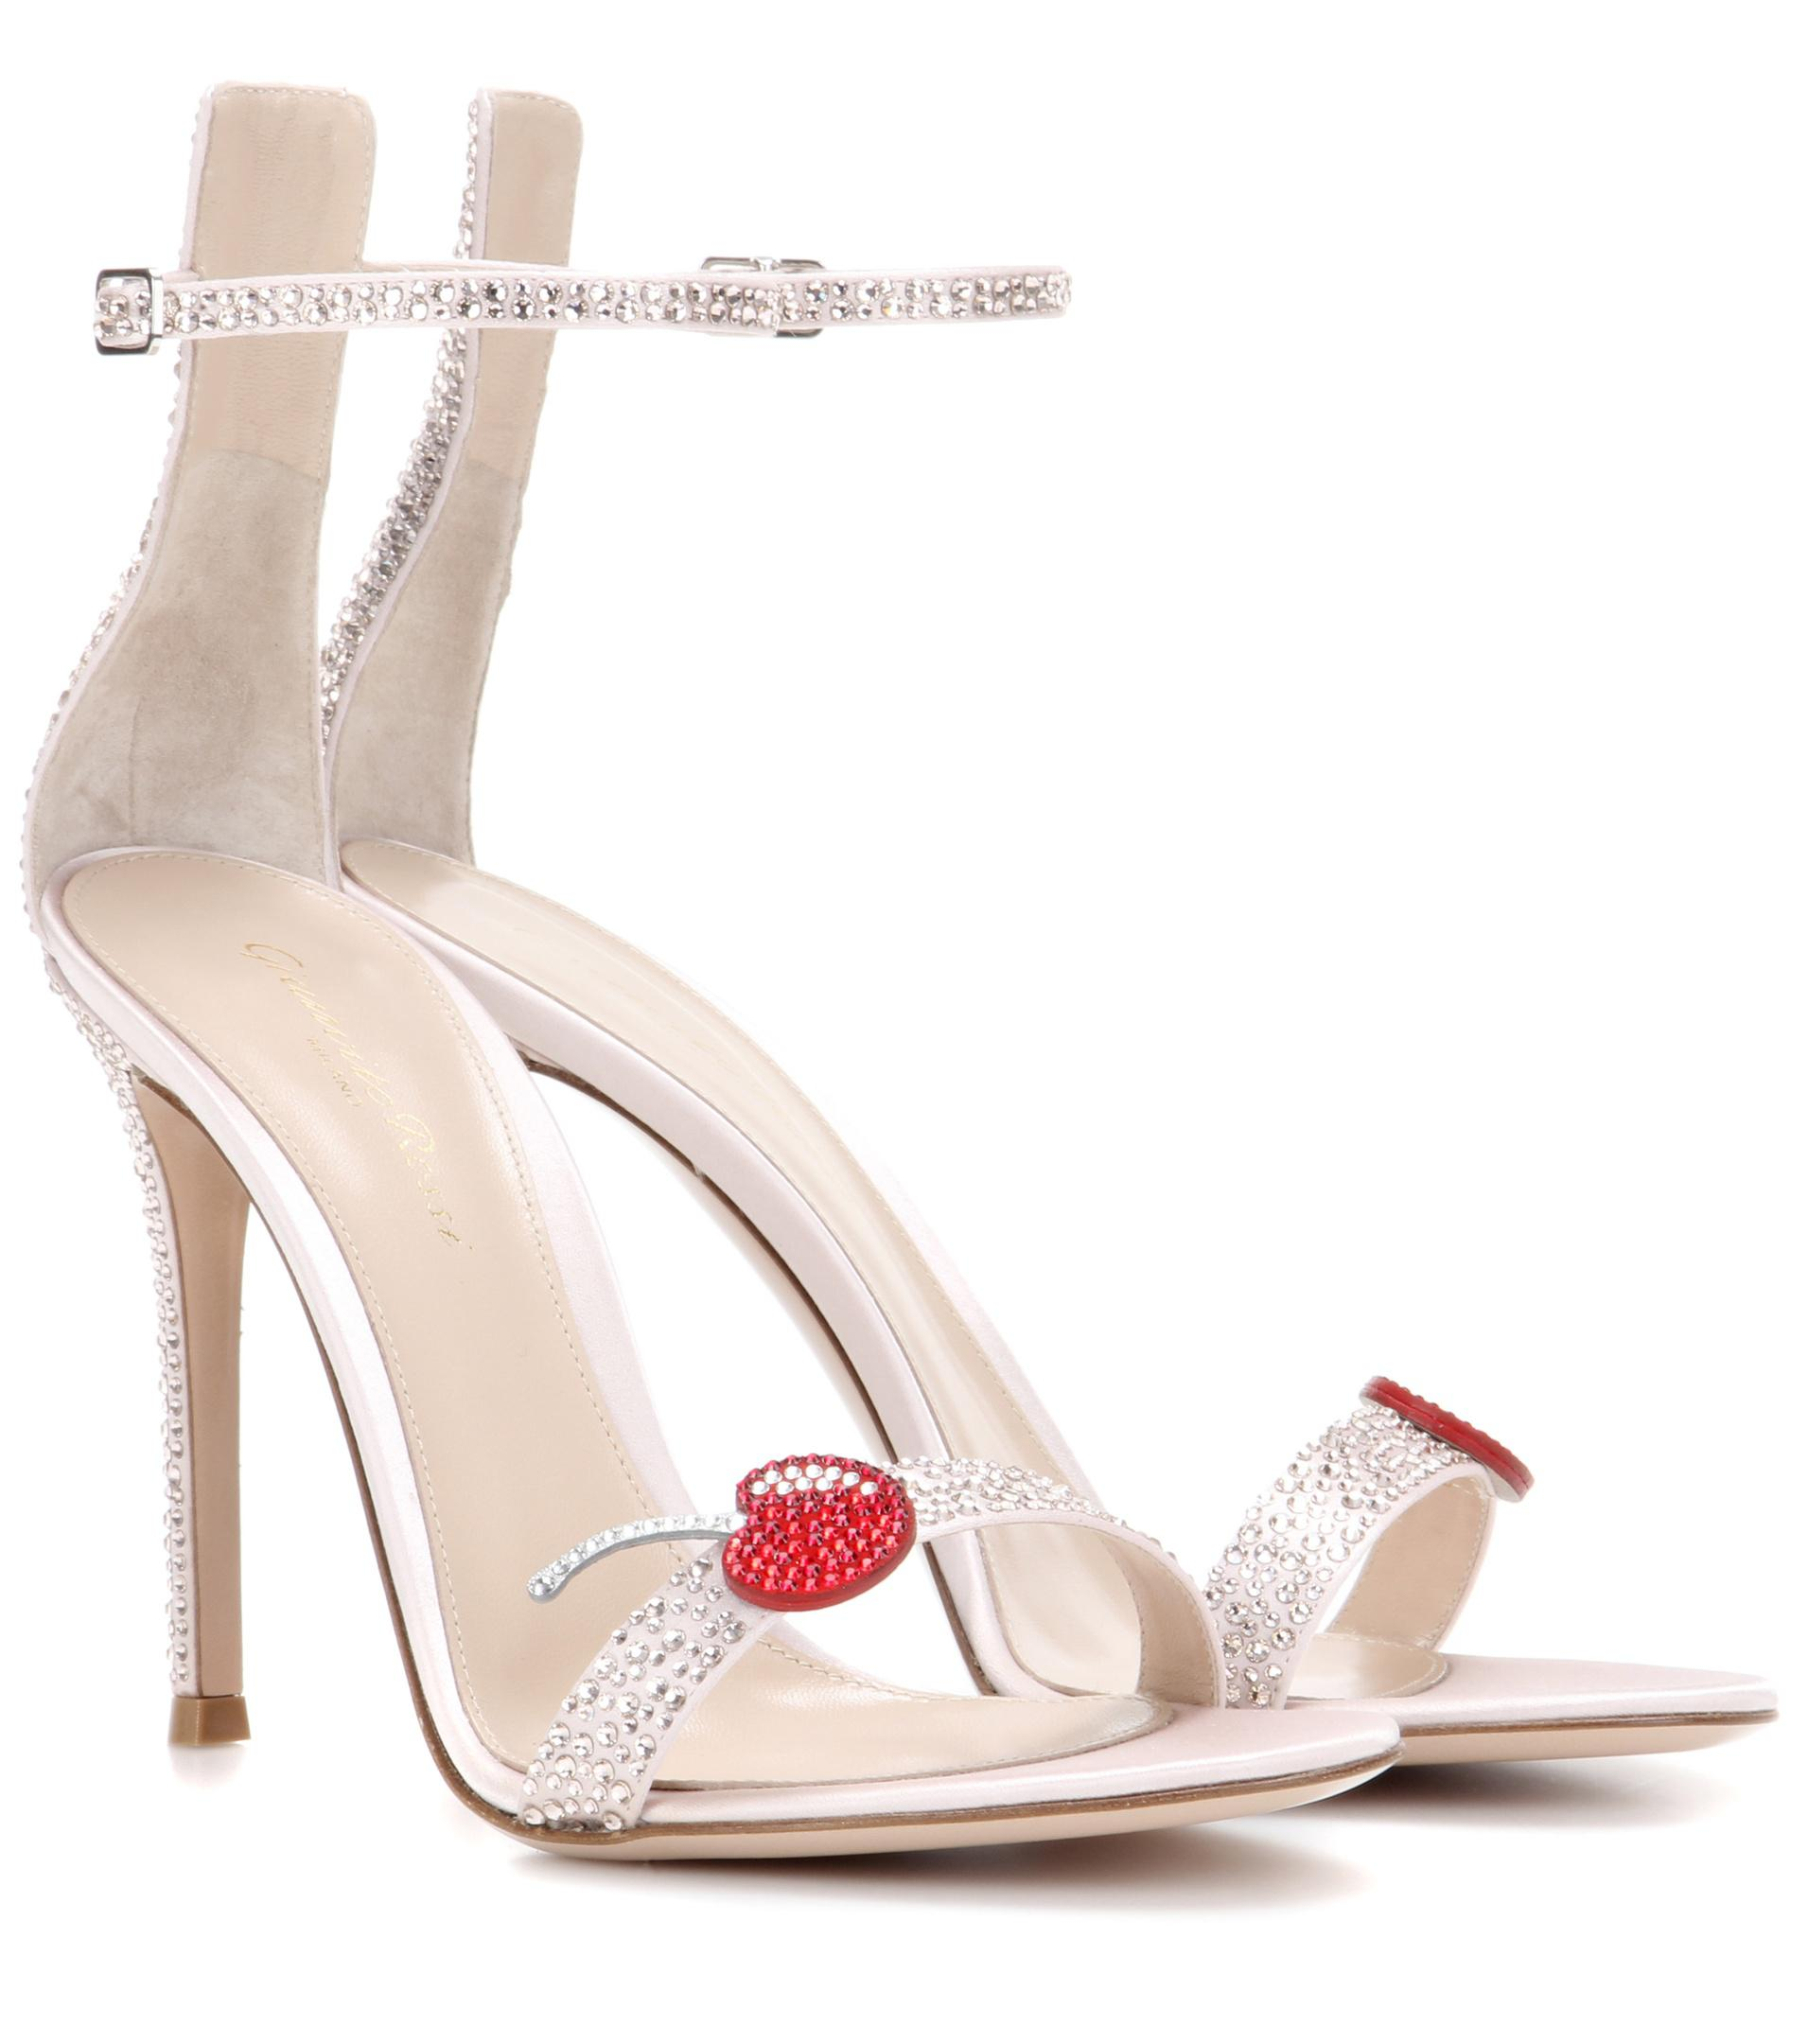 Gianvito Rossi Cherry 70 Sandals sale brand new unisex low price fee shipping sale online 25Dh21nVP